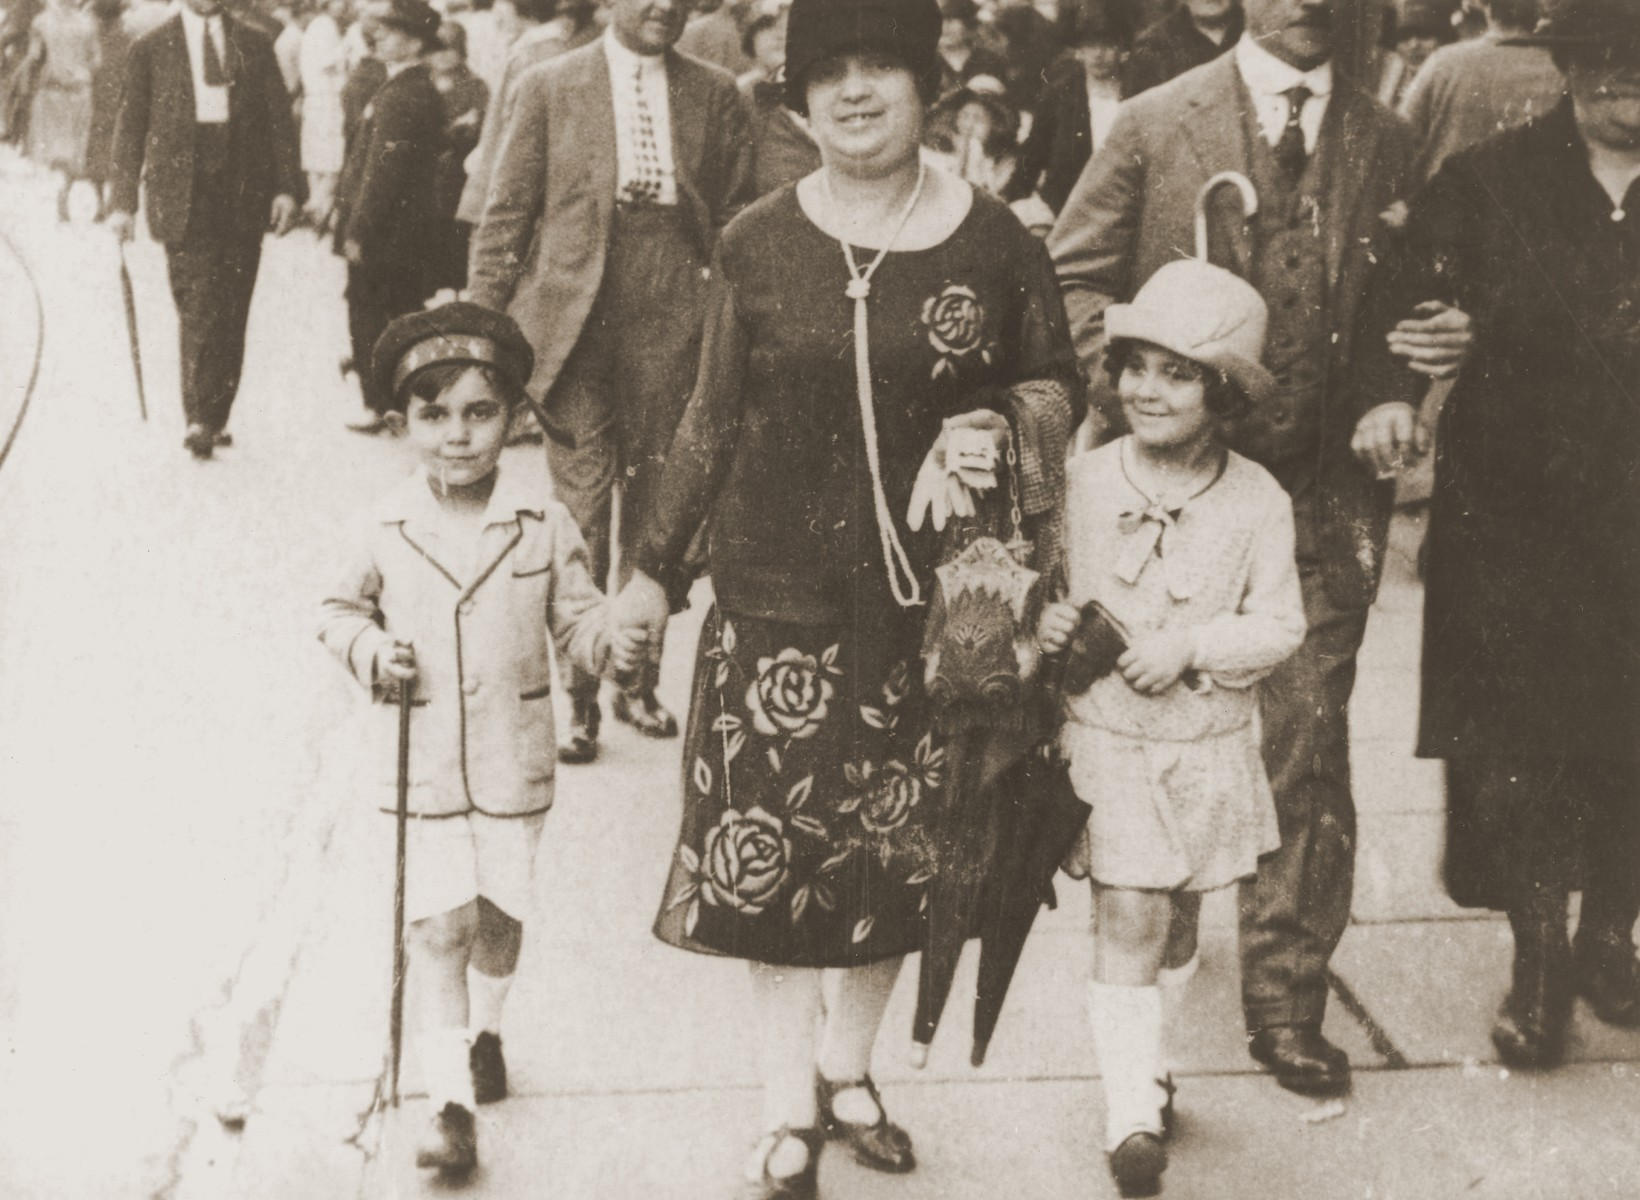 Simone Weil with her mother and brother on a street in Strasbourg.